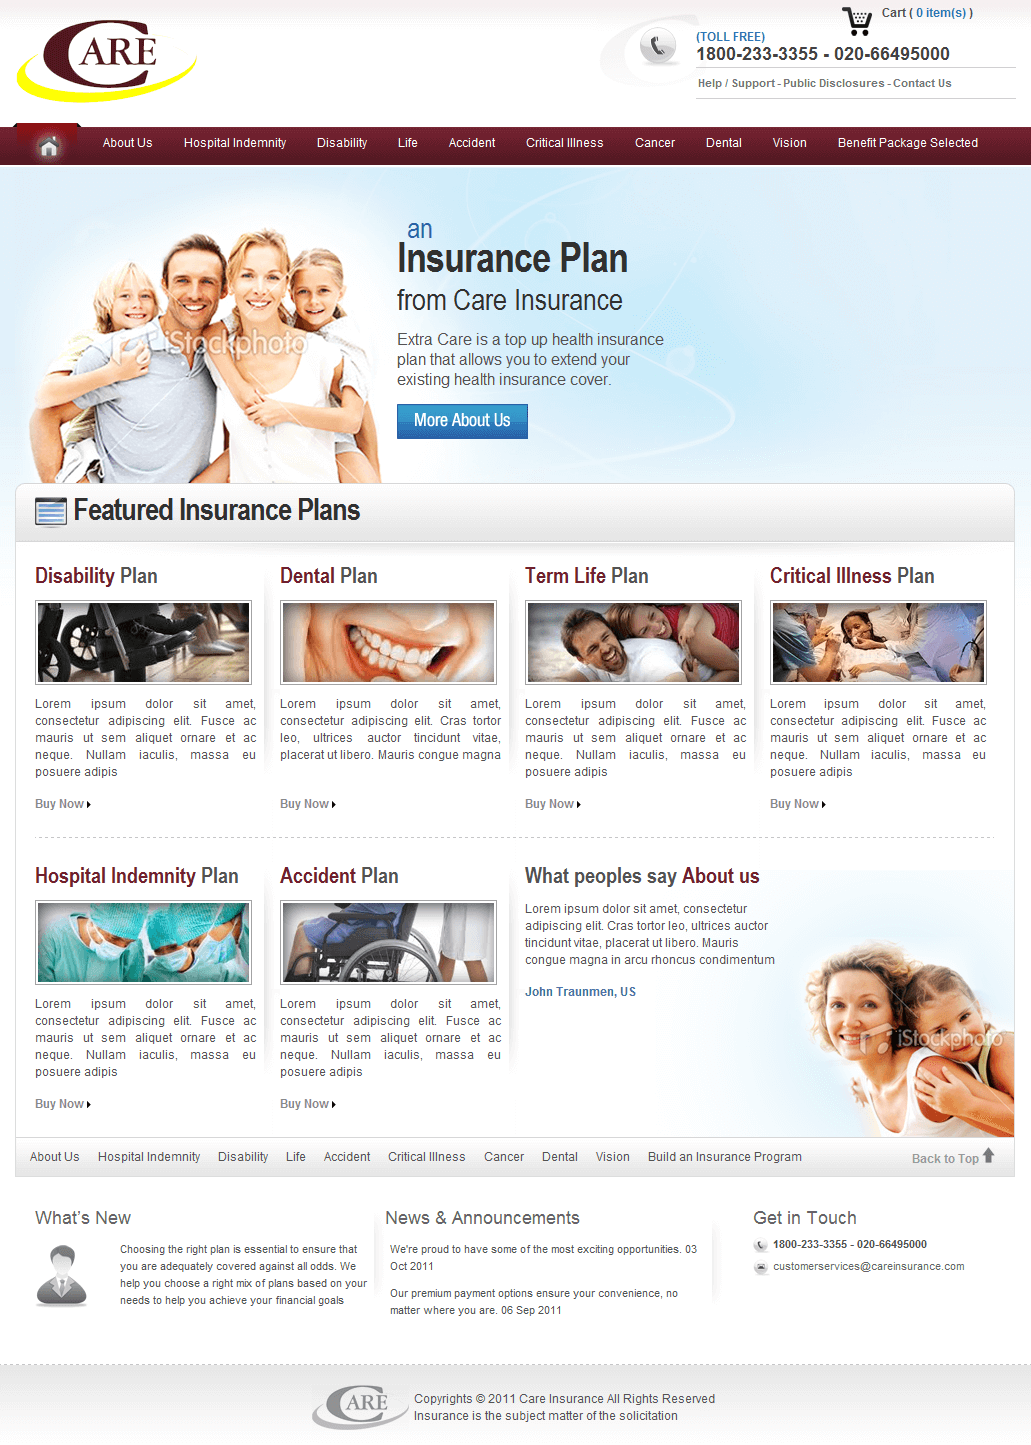 PHP Website for Health Insurance Services 'Care'